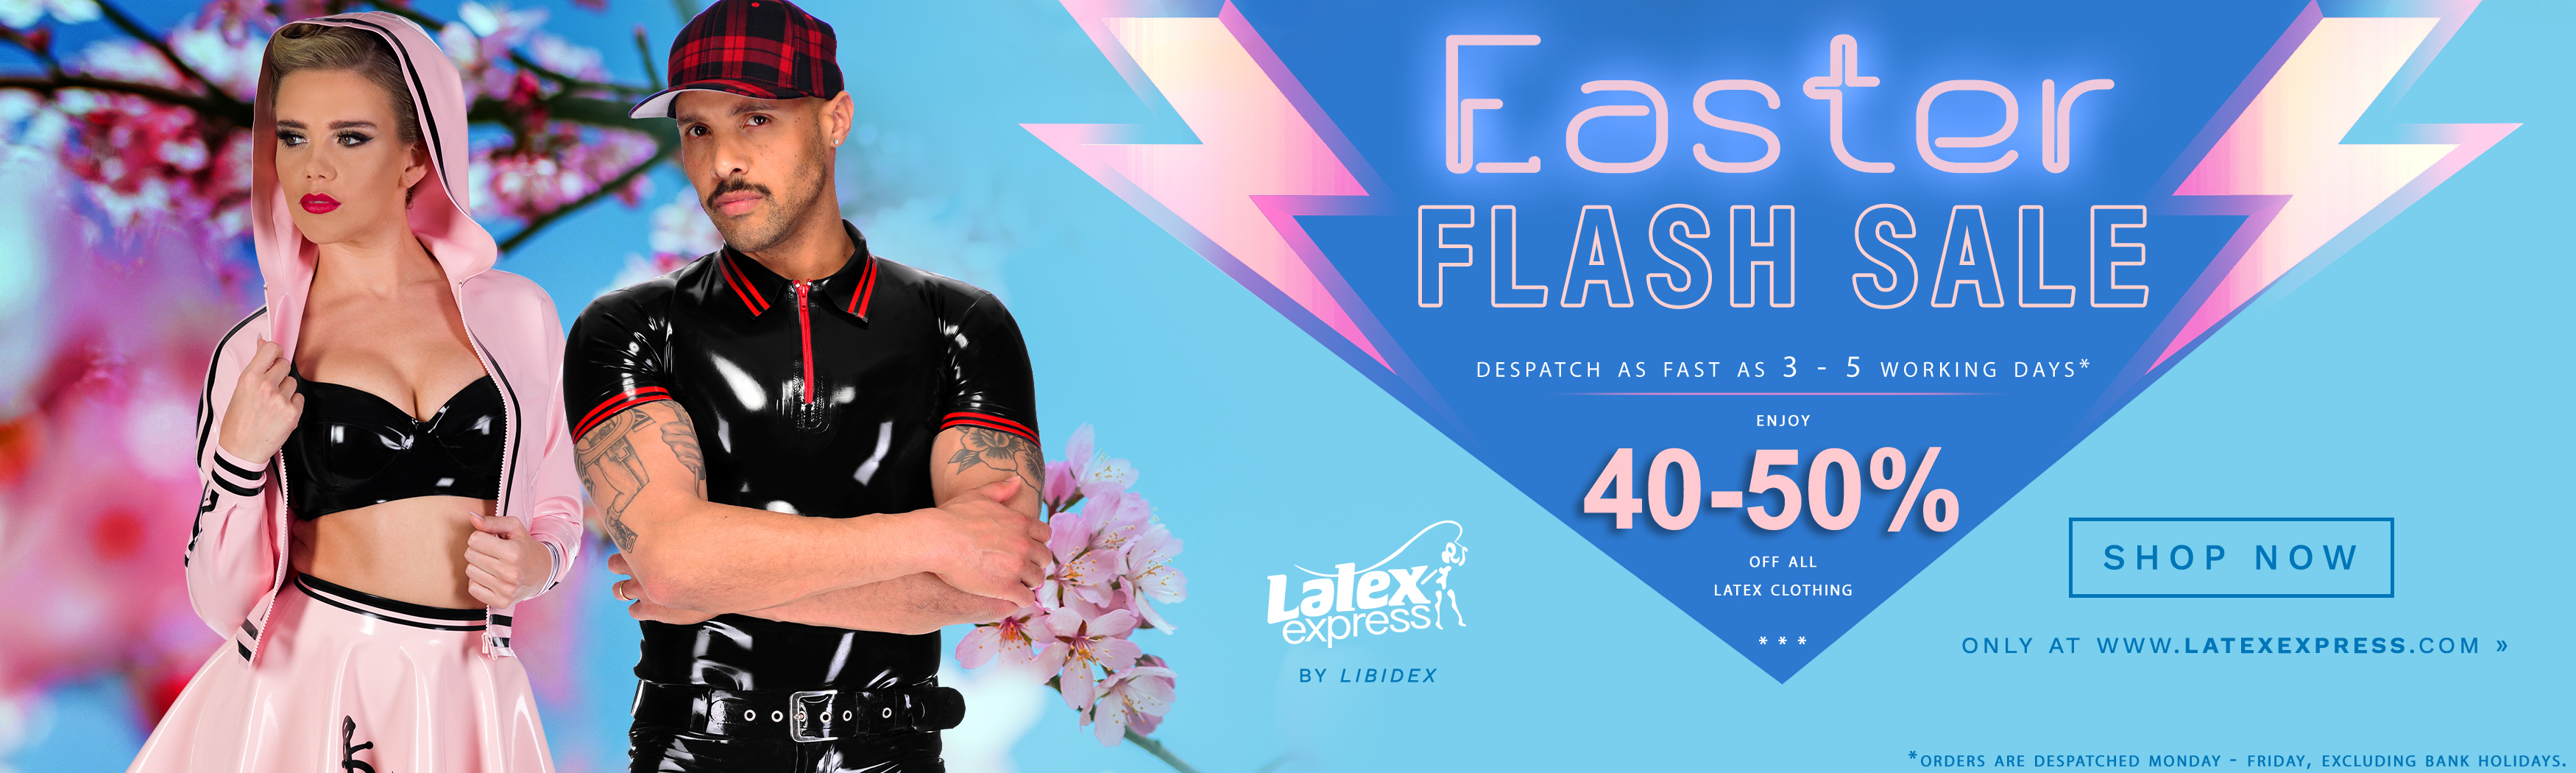 EASTER FLASH SALE 2020